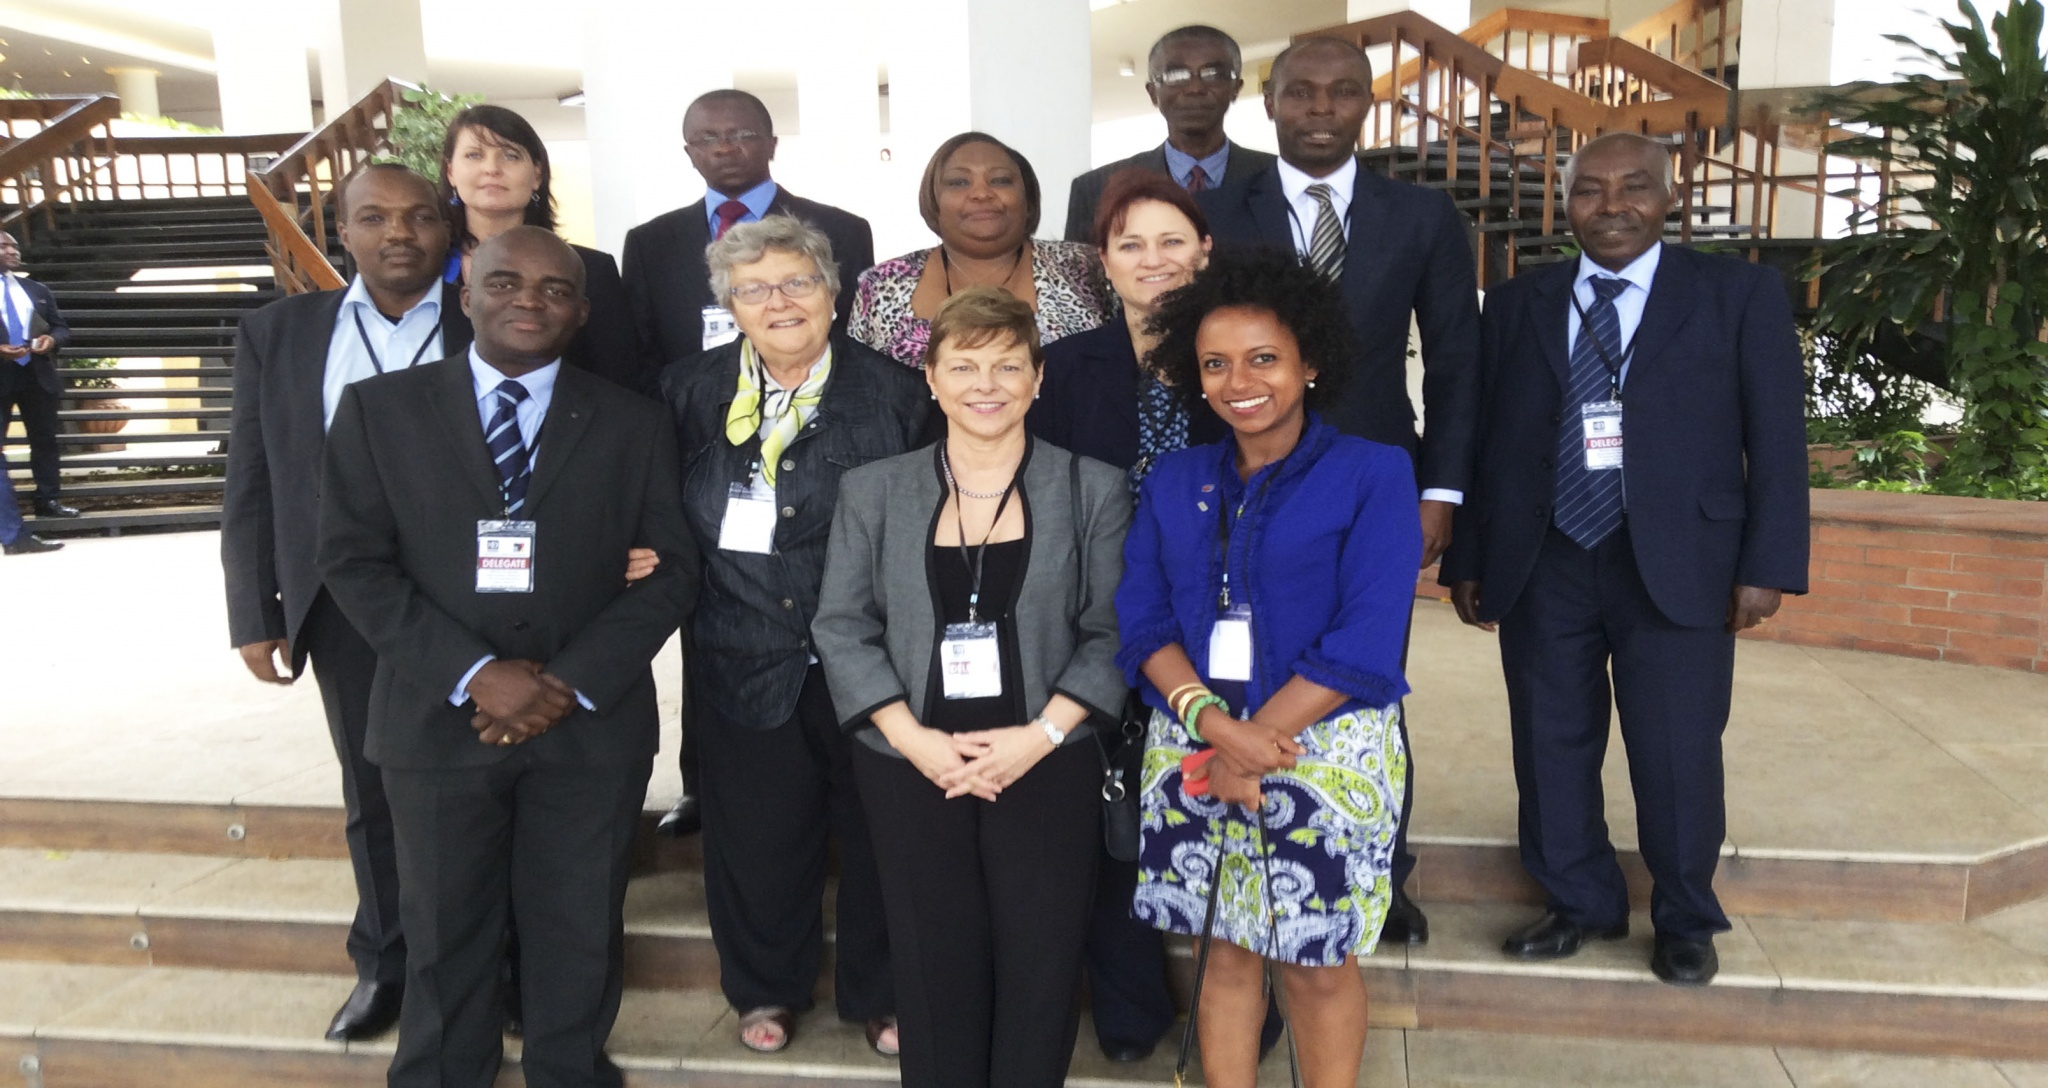 ACGN meeting at Nigeria Lagos, July 2015